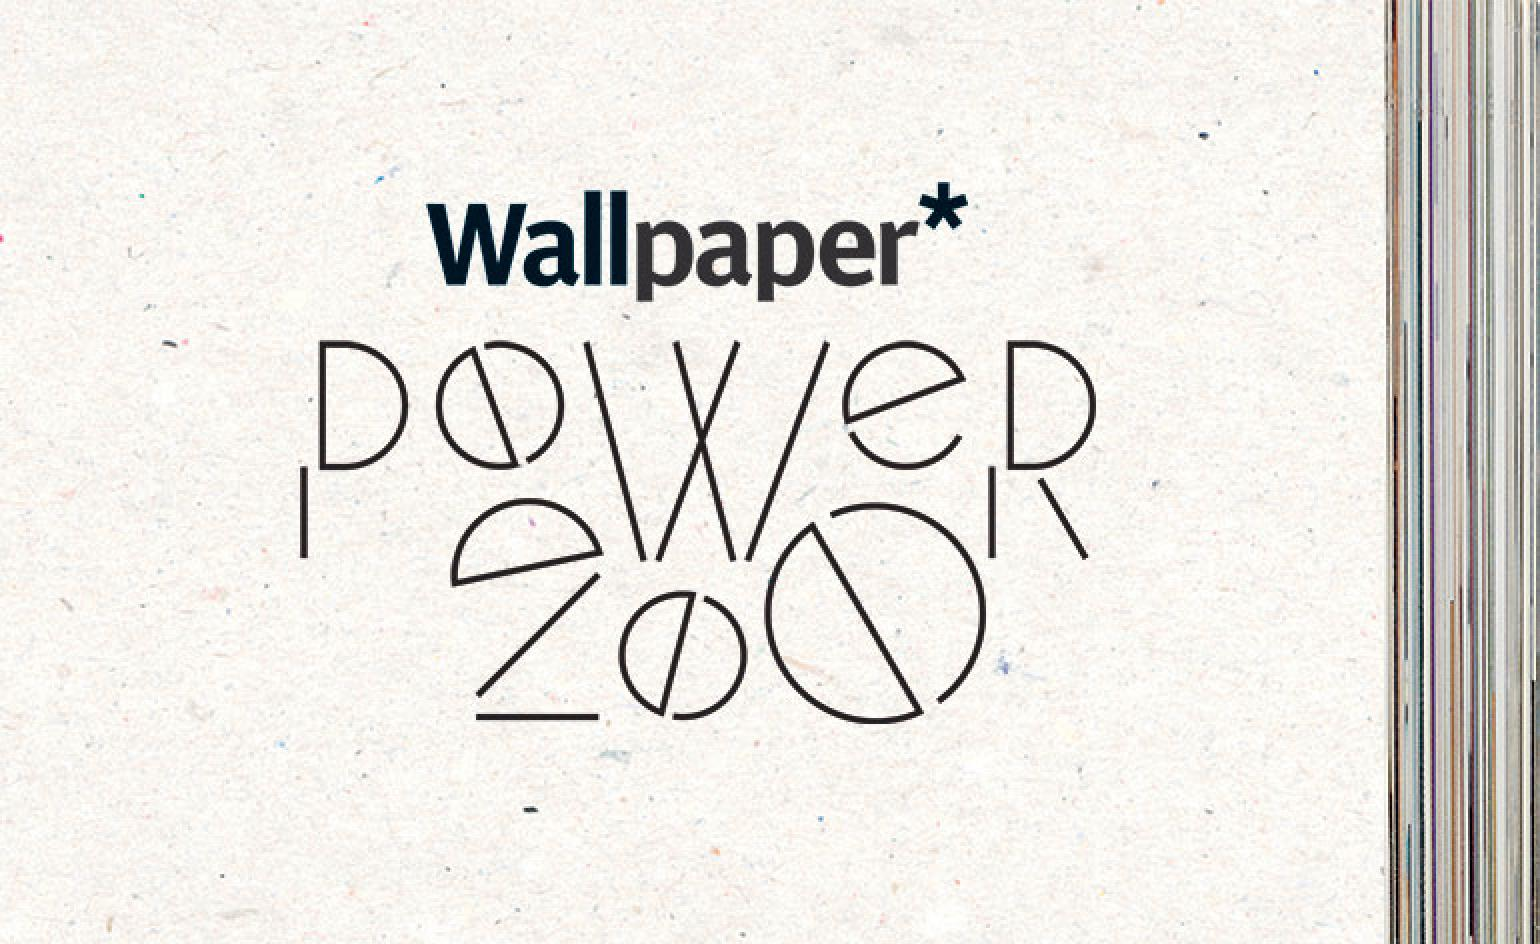 Wallpaper Writing Wallpaper Power 200 The World S Top Design Names And Influencers